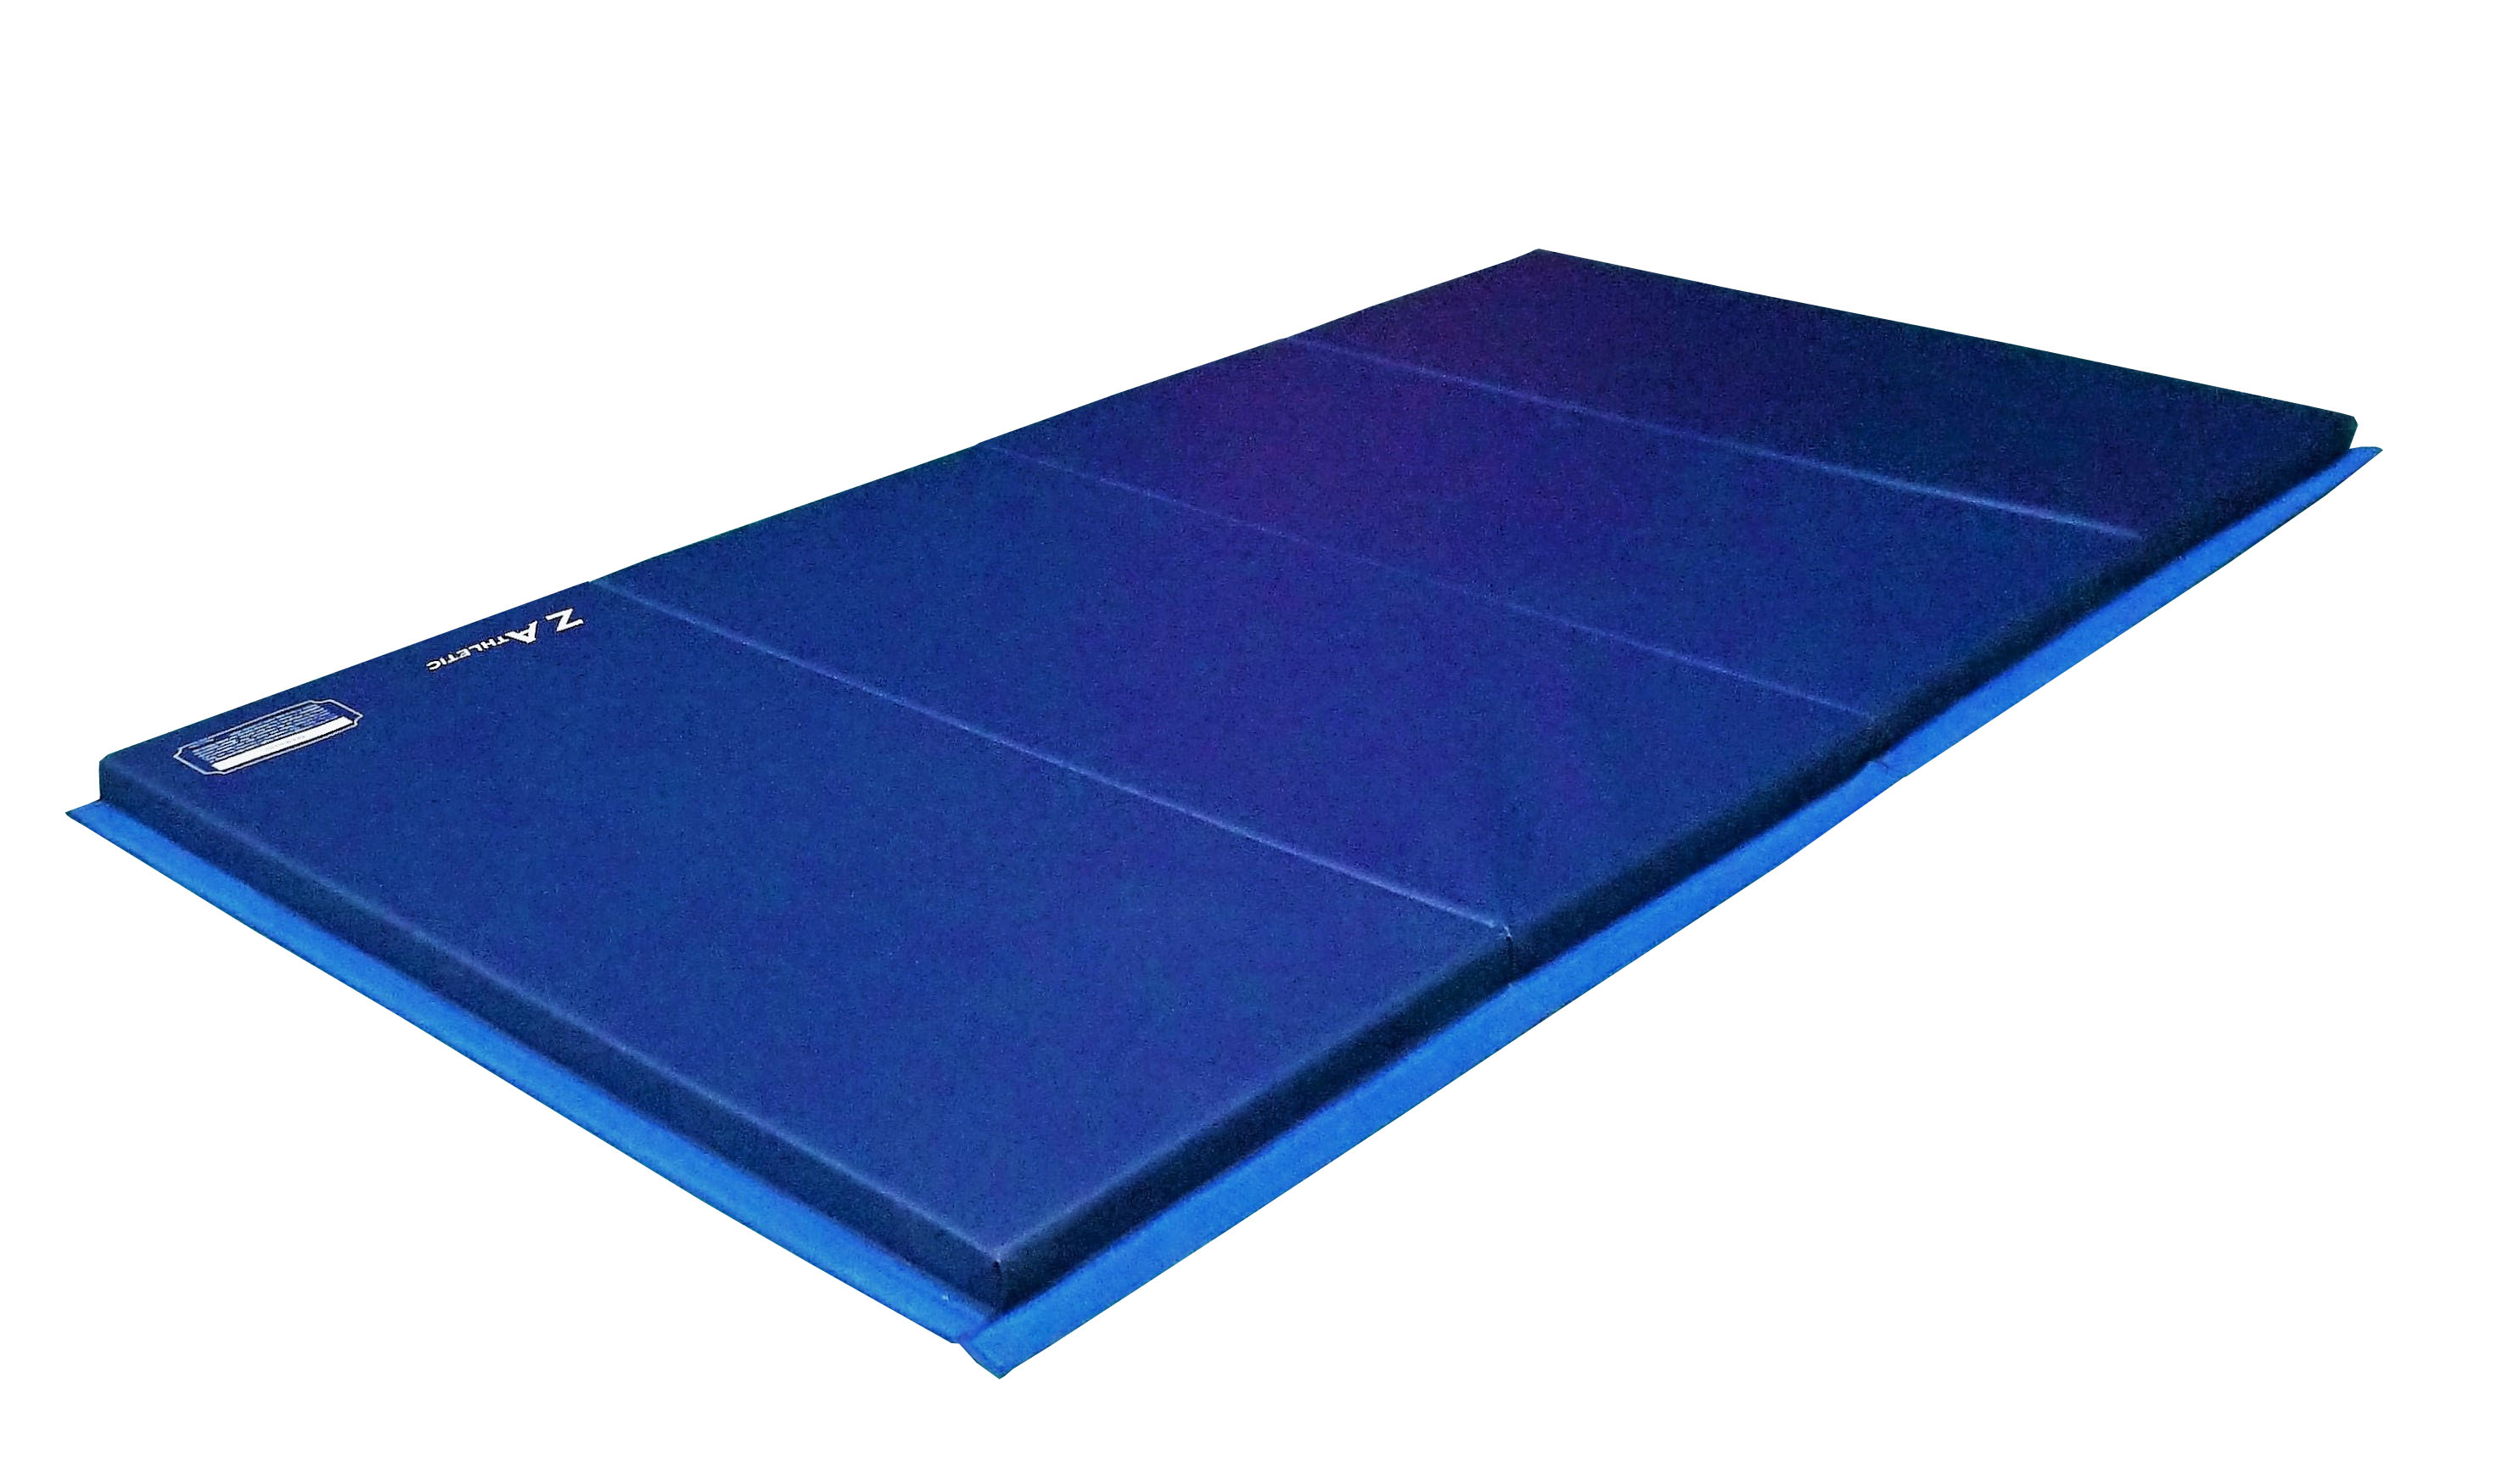 gymnastic diy amazon exercise tumbling mat com mats leather x tenive pu sports b flooring gymnastics outdoors